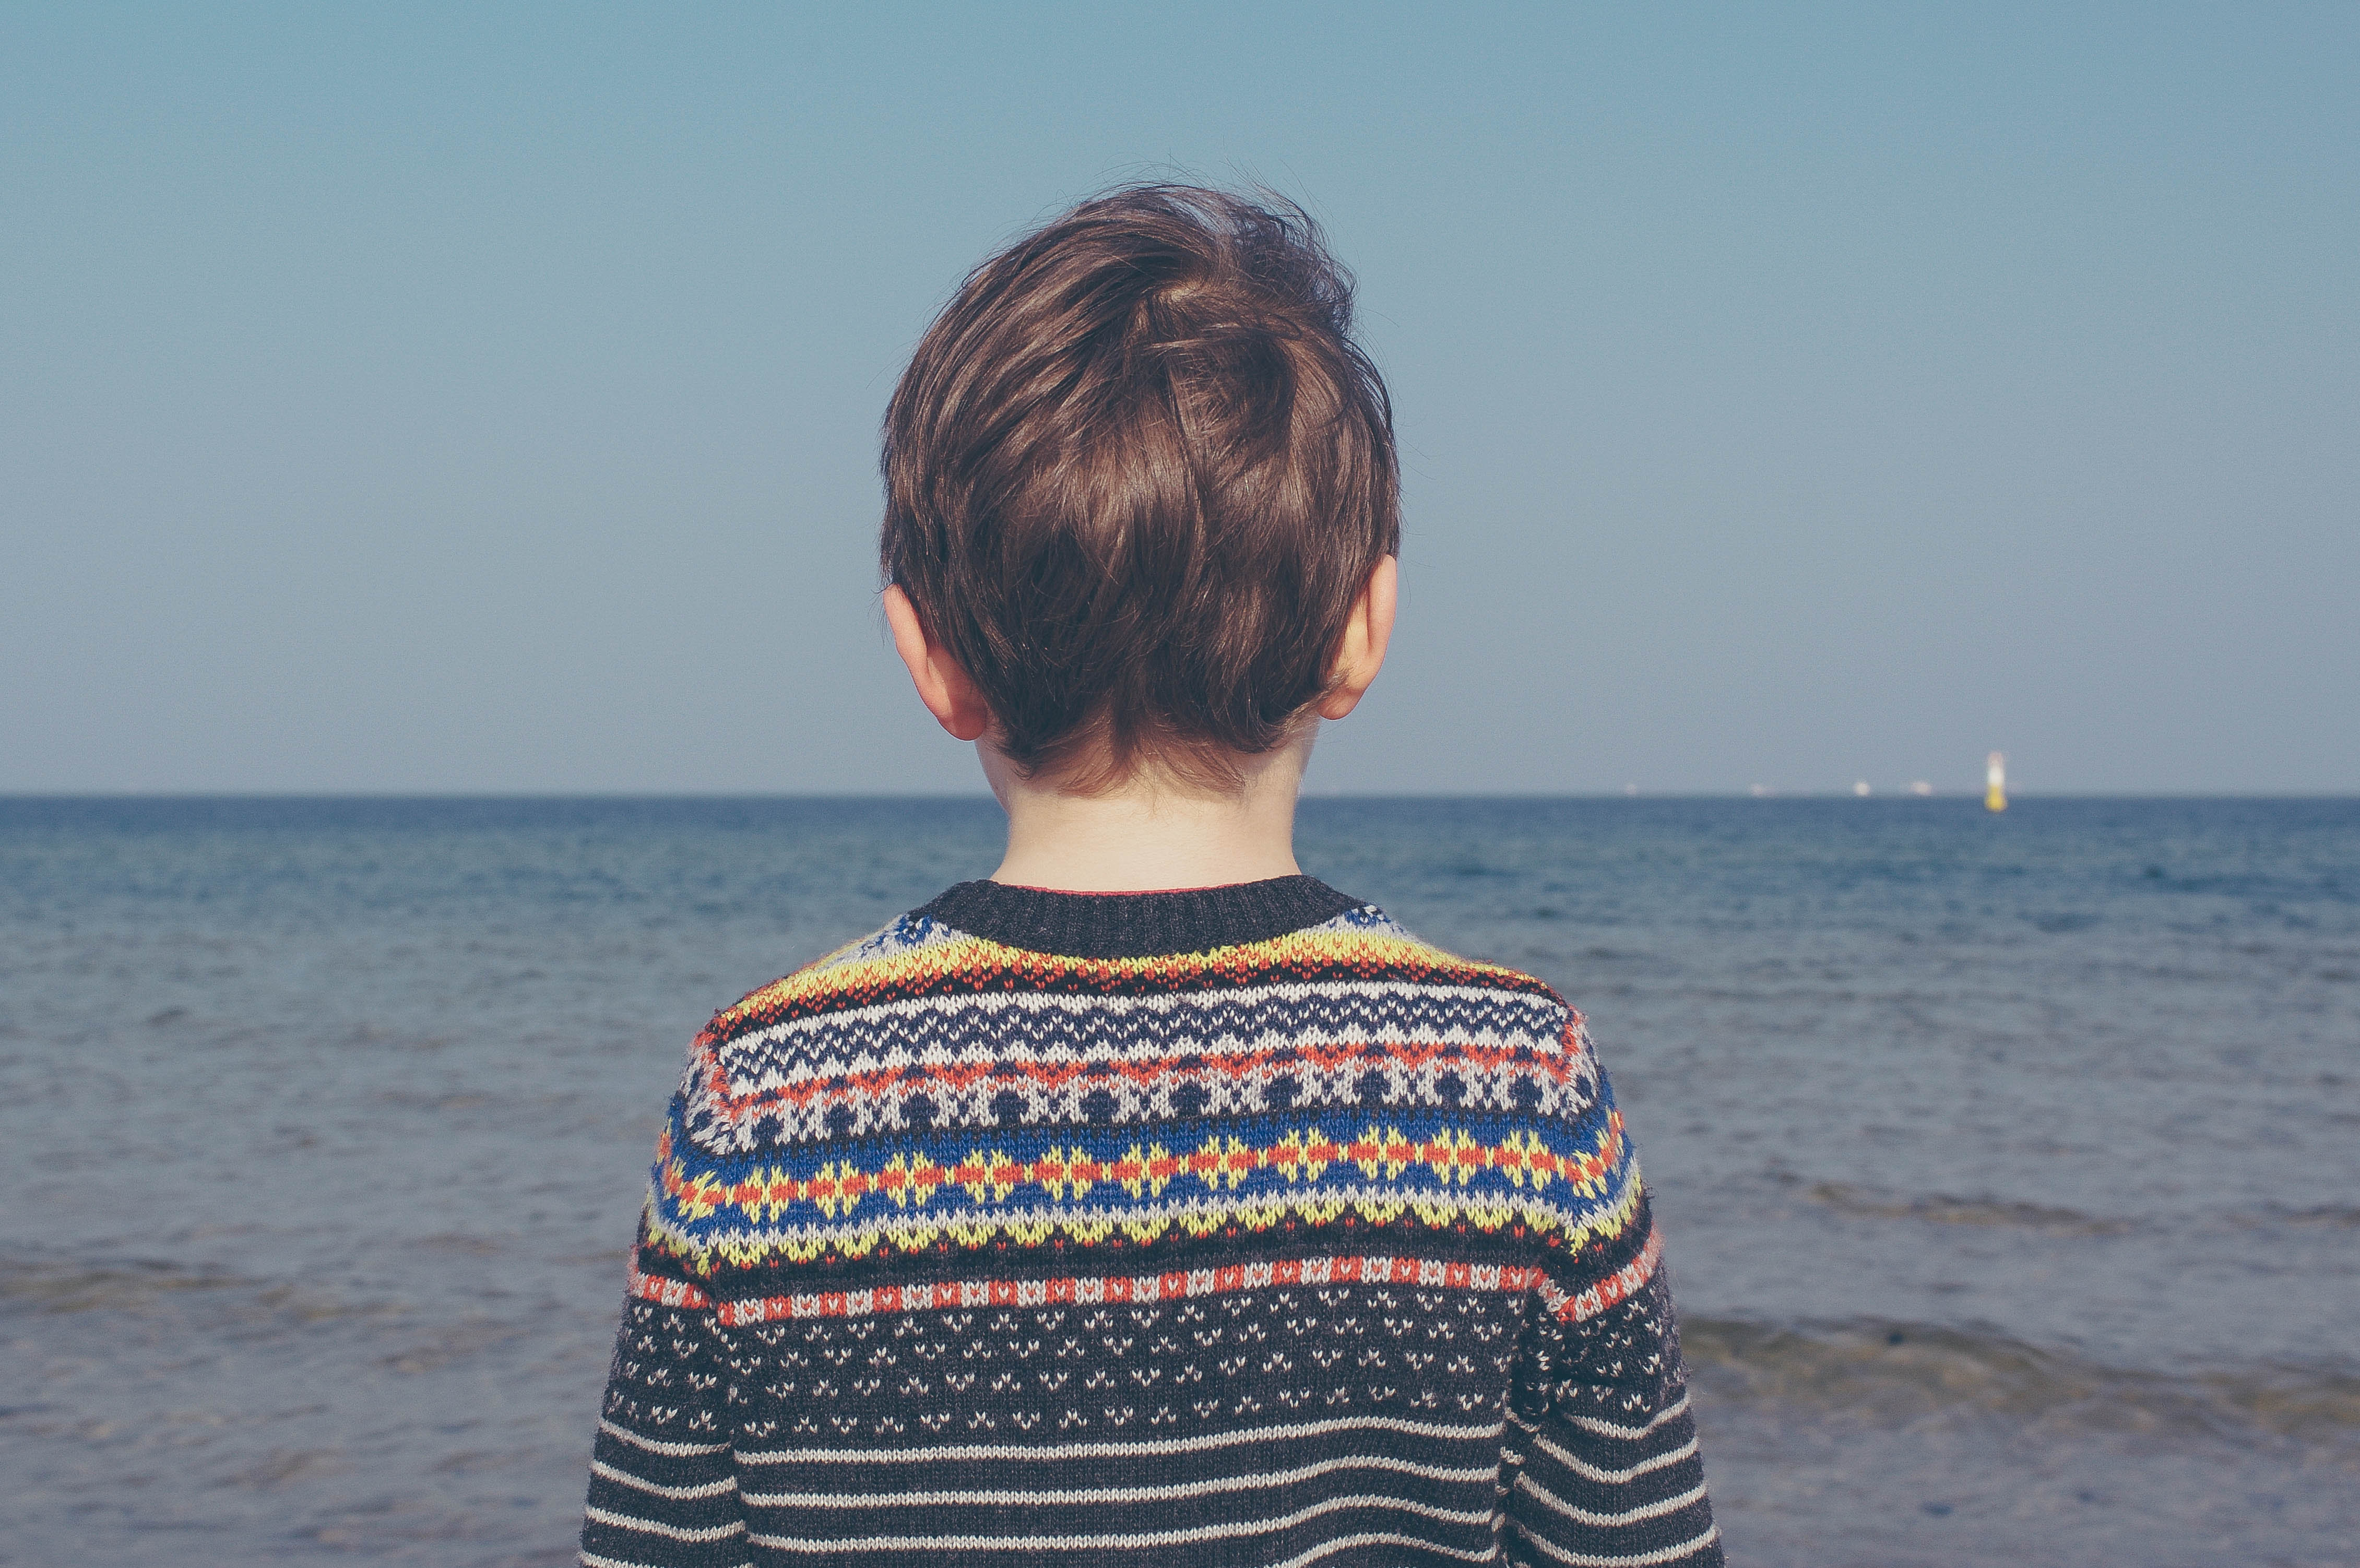 Children and counseling: It's more common than you might think